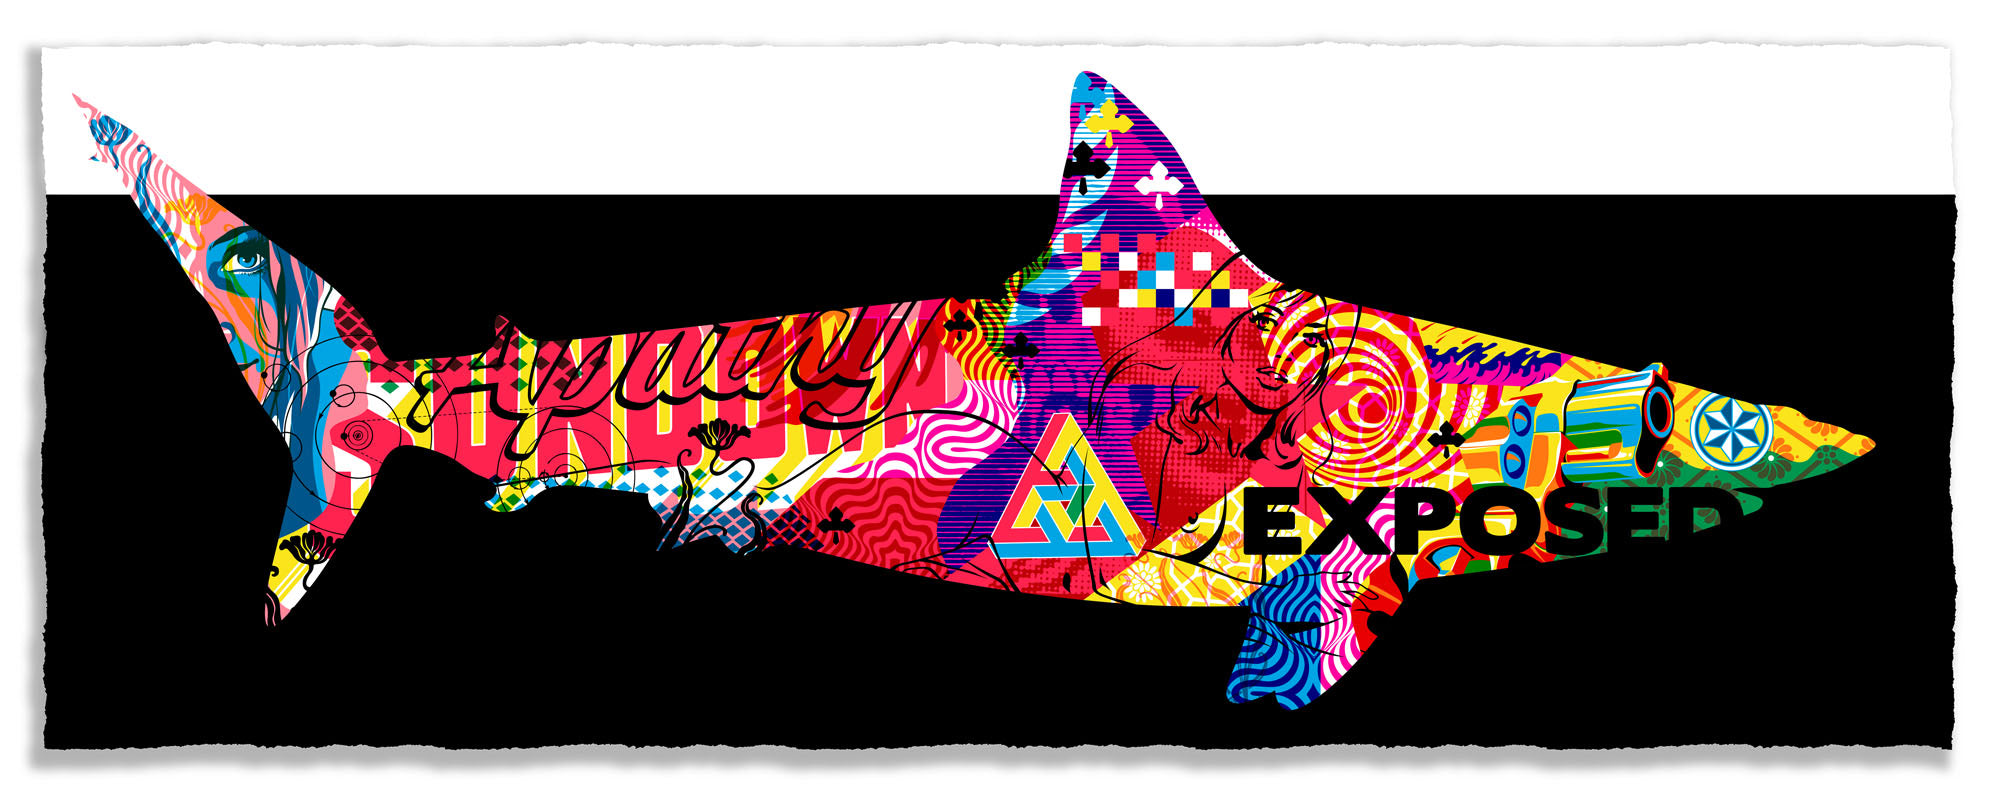 "Tristan Eaton, ""Apathy Exposed"""